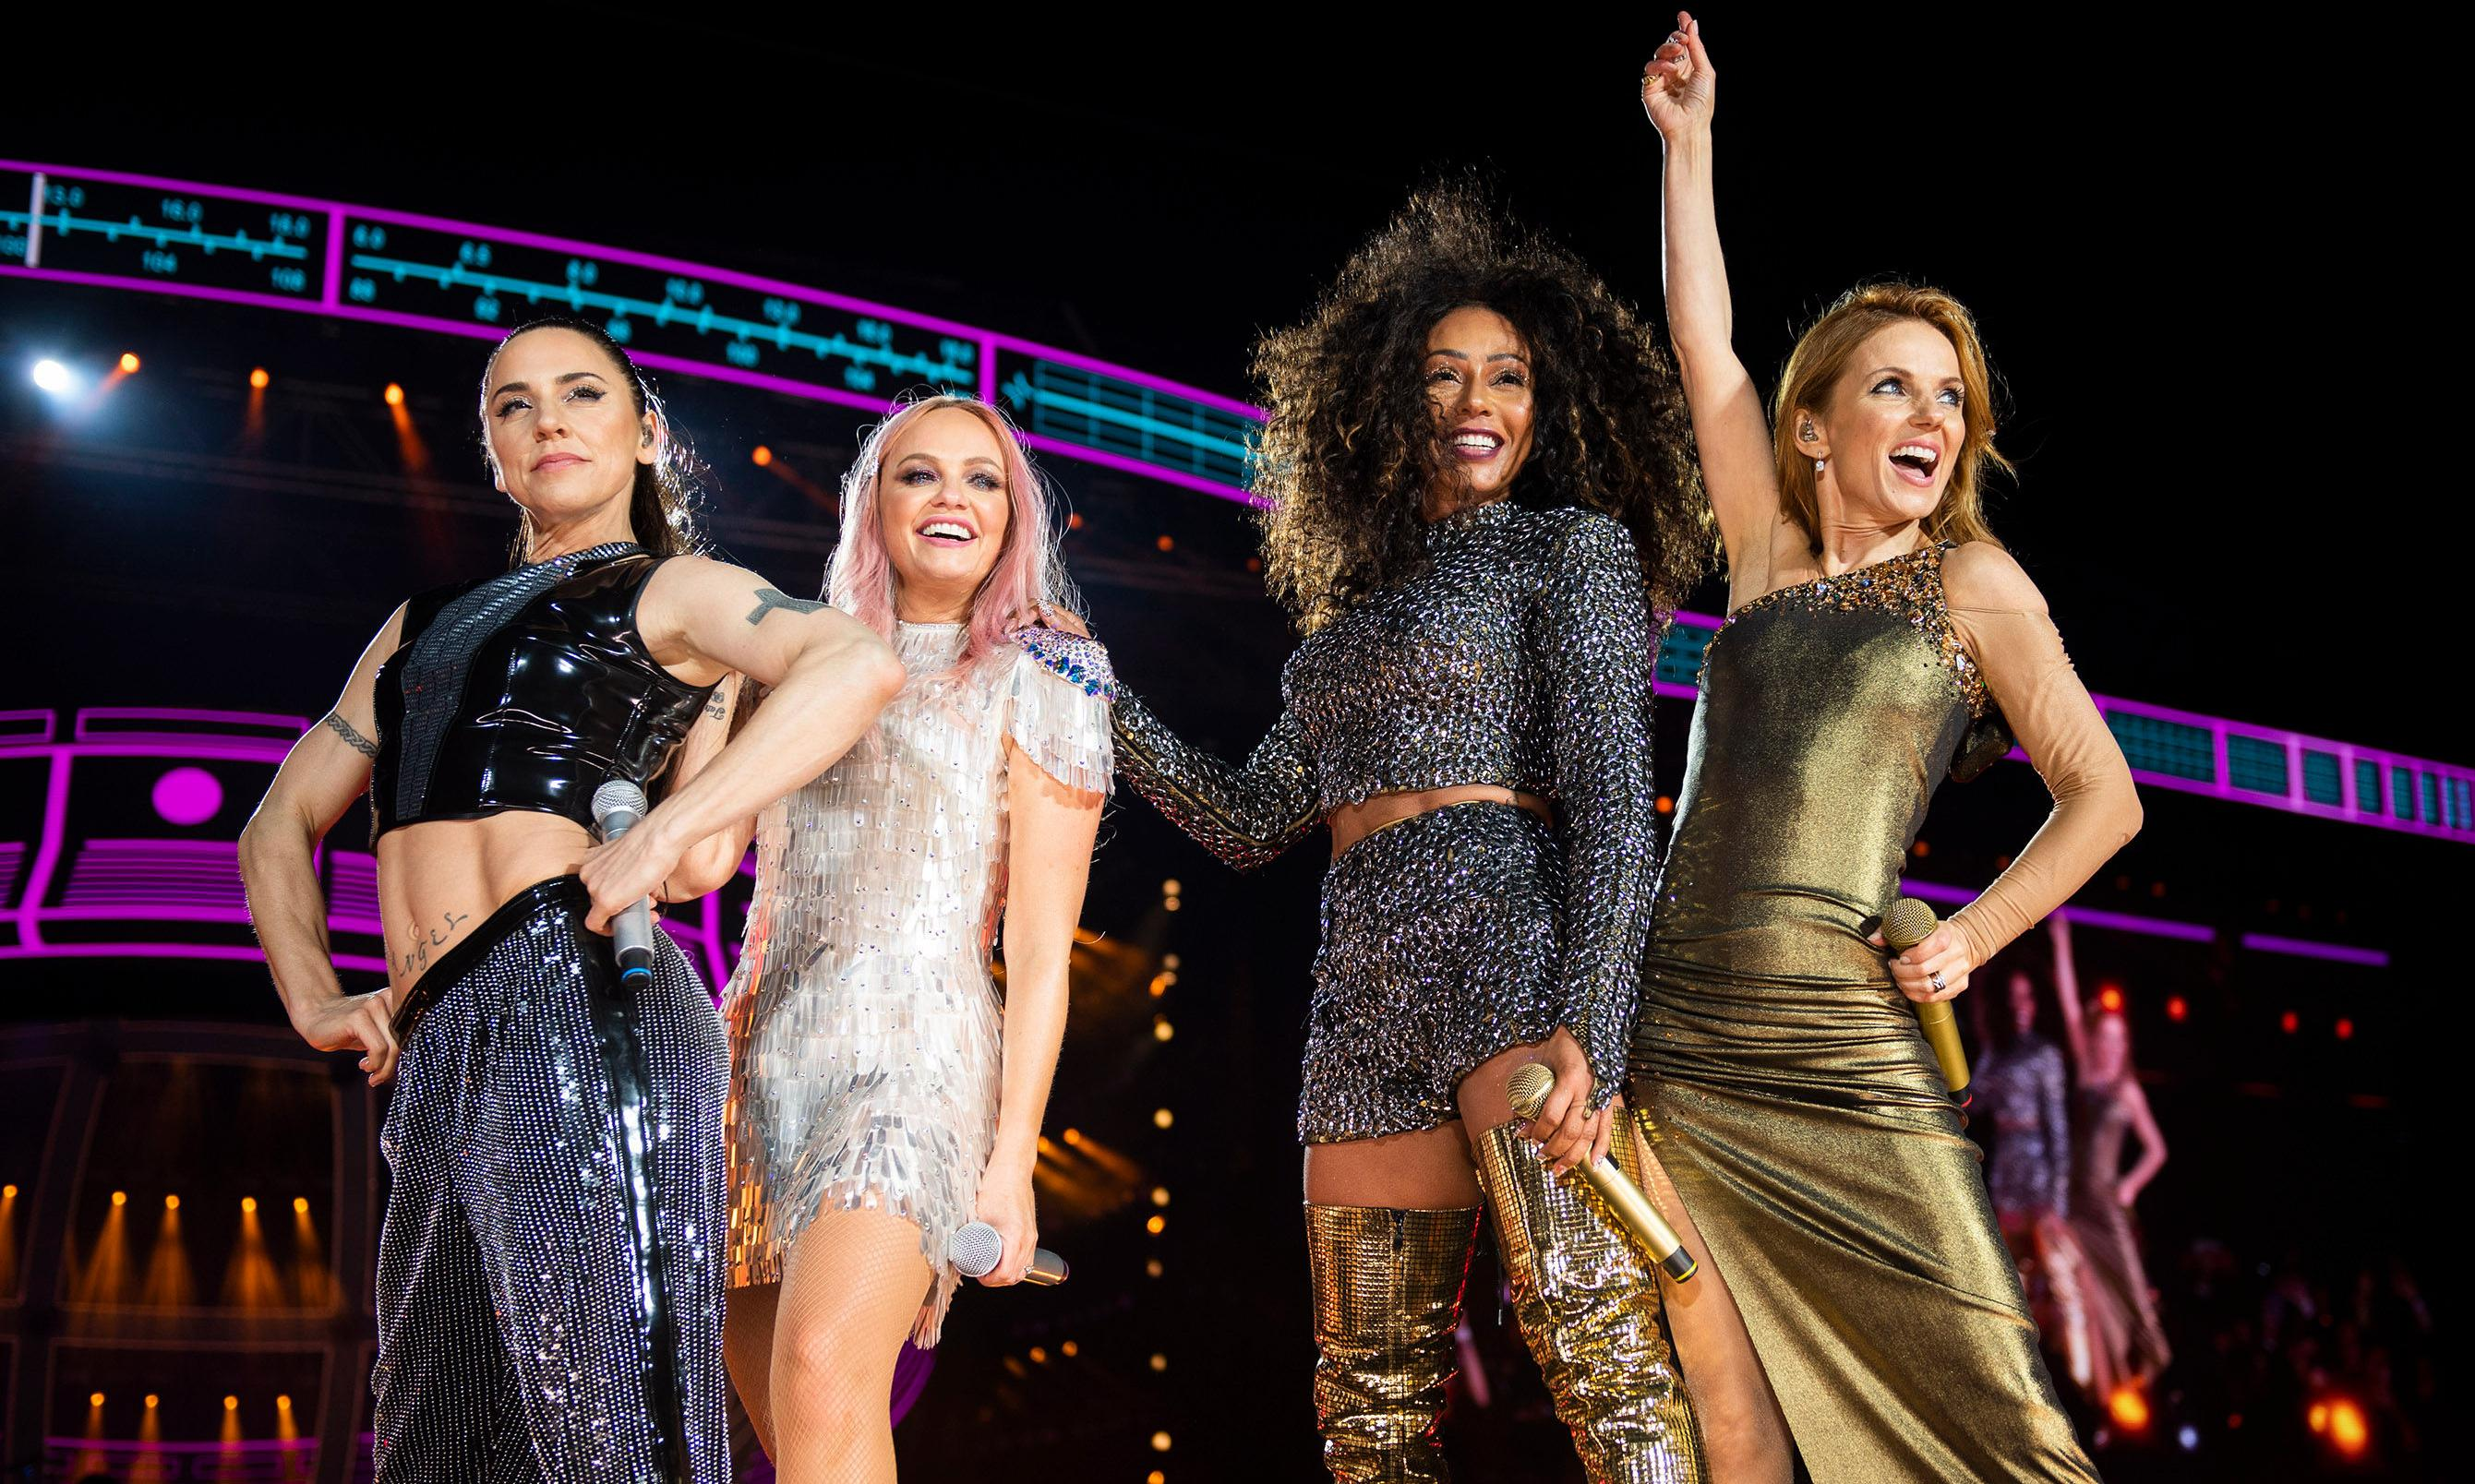 Say you'll be where? Spice Girls taunt Australian fans by taking back promise of tour